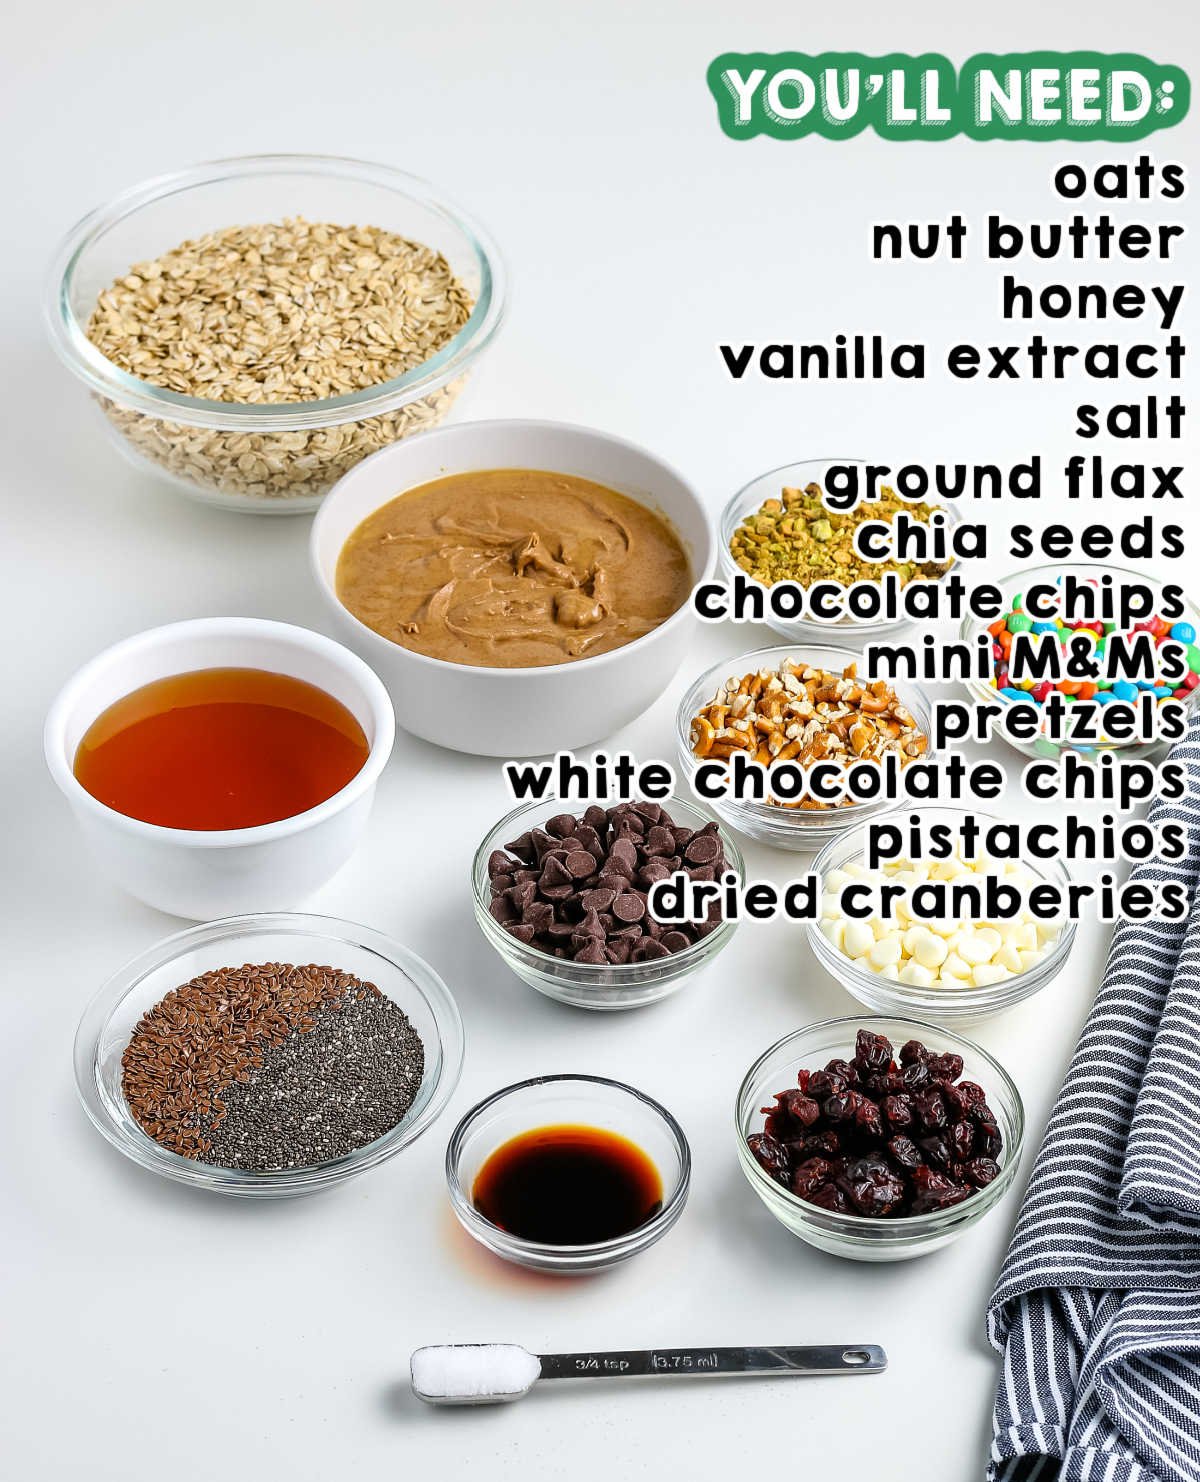 All of the ingredients needed to make Energy Balls.